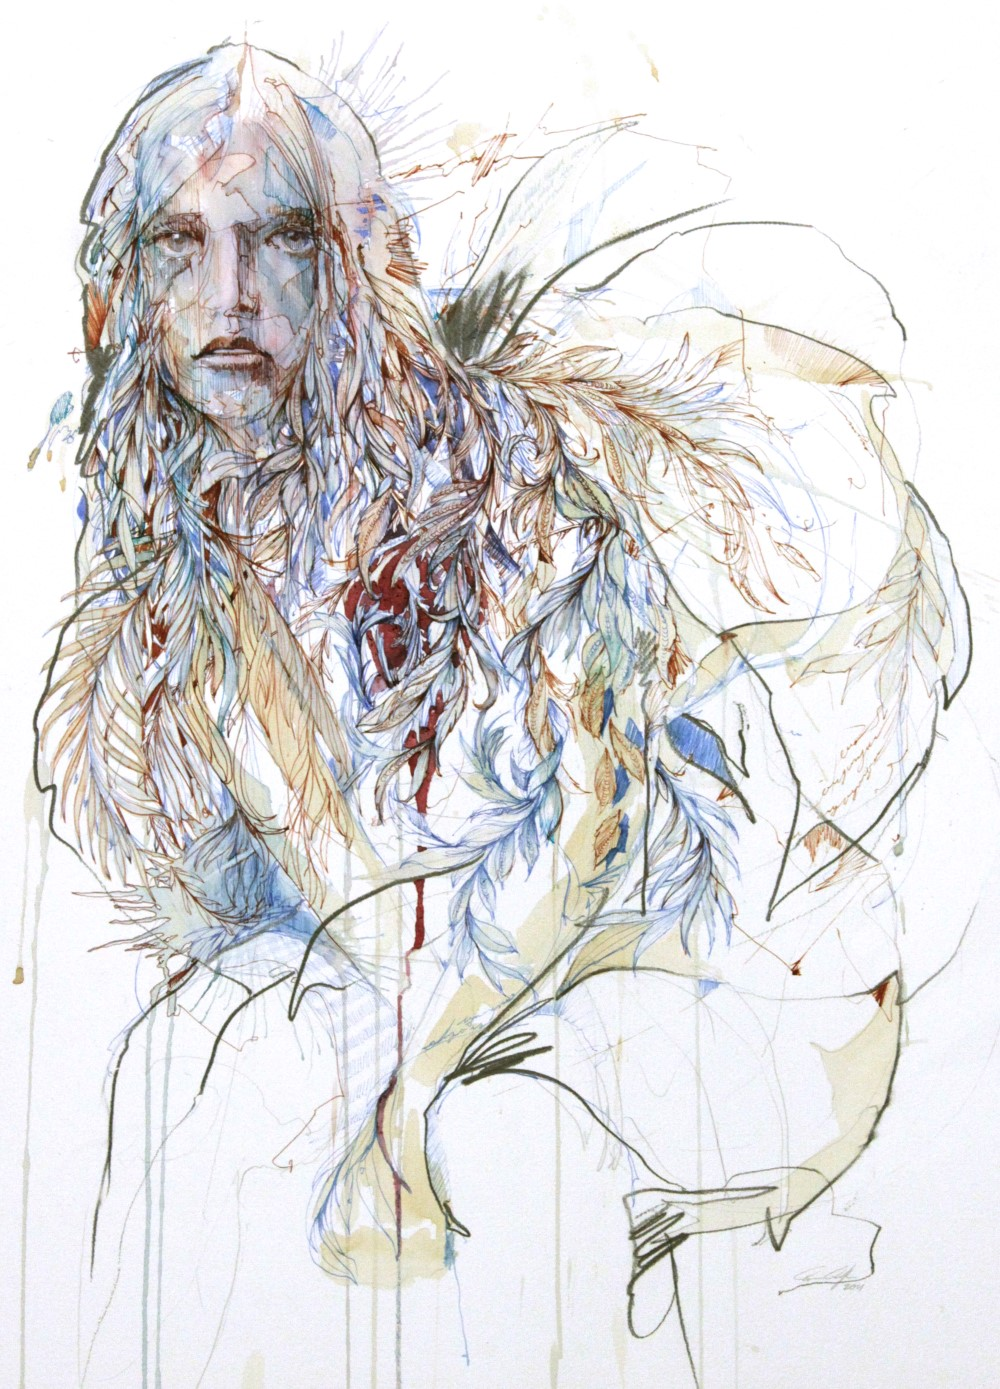 Heartache by Carne Griffiths